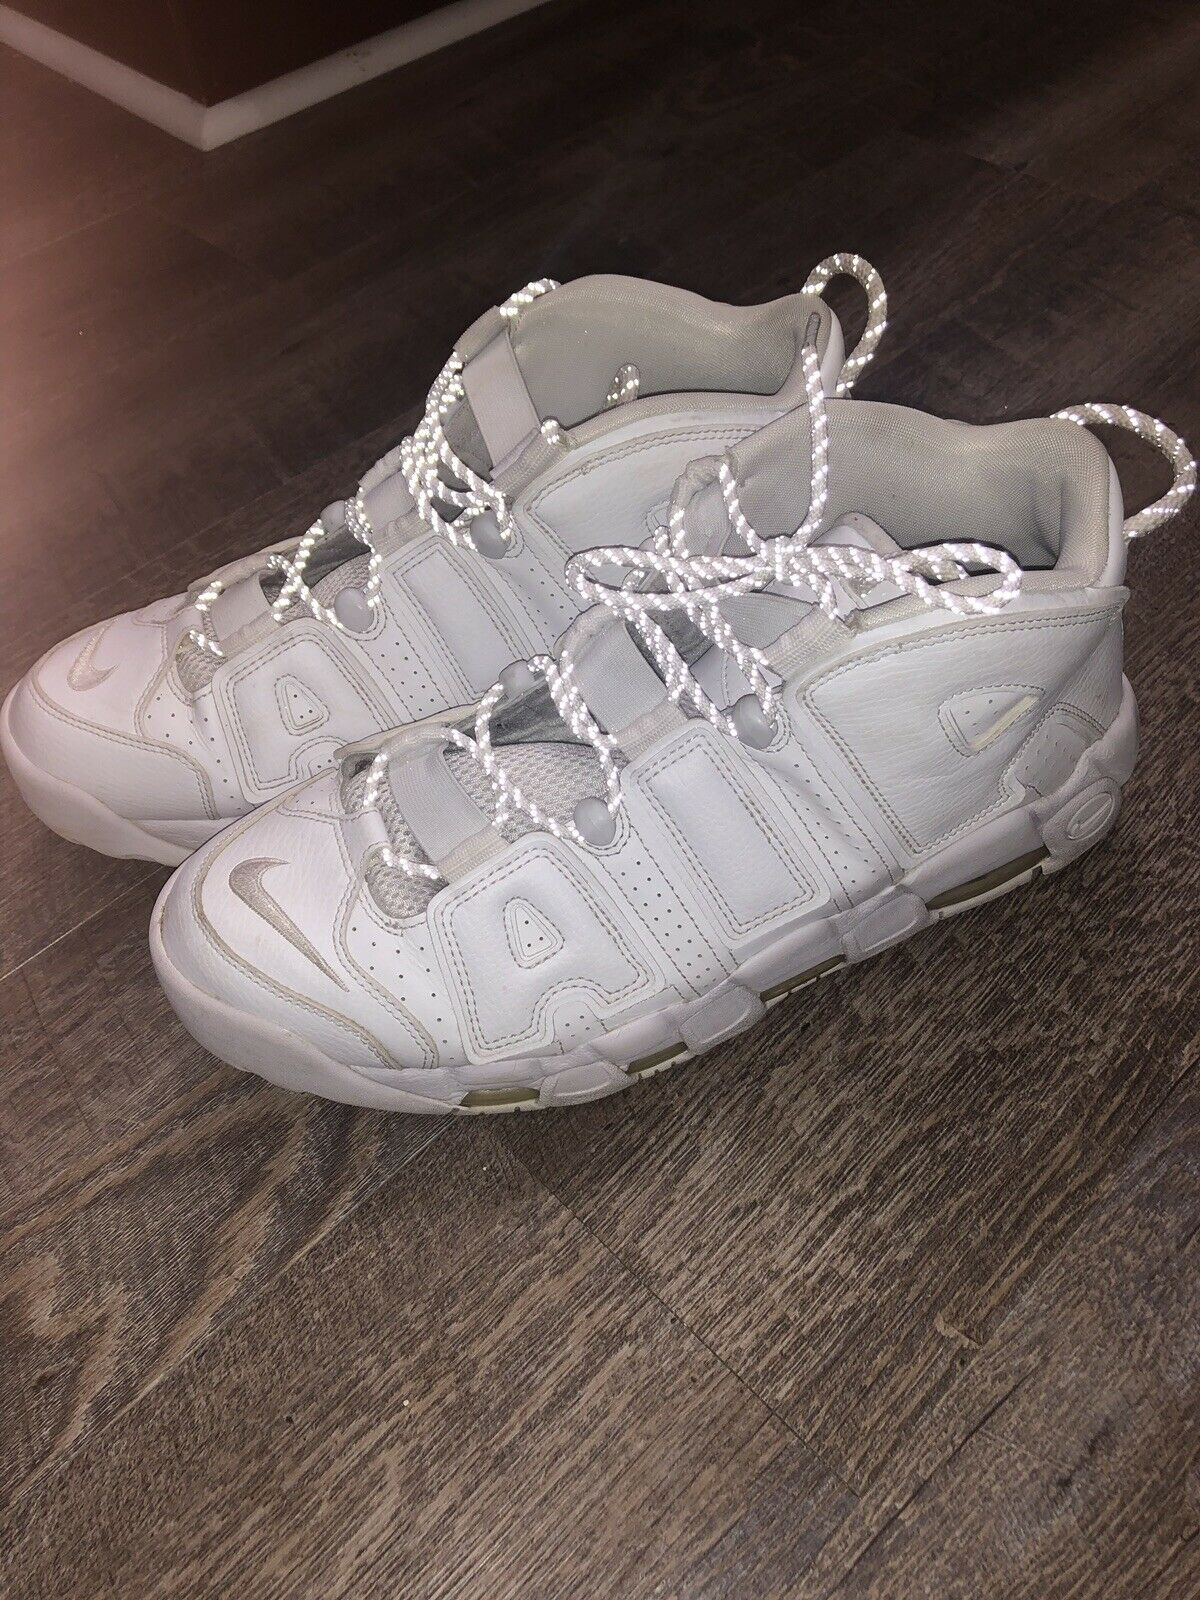 Nike Air More Uptempo '96 (921948-100) Men's shoes - White, 13 US